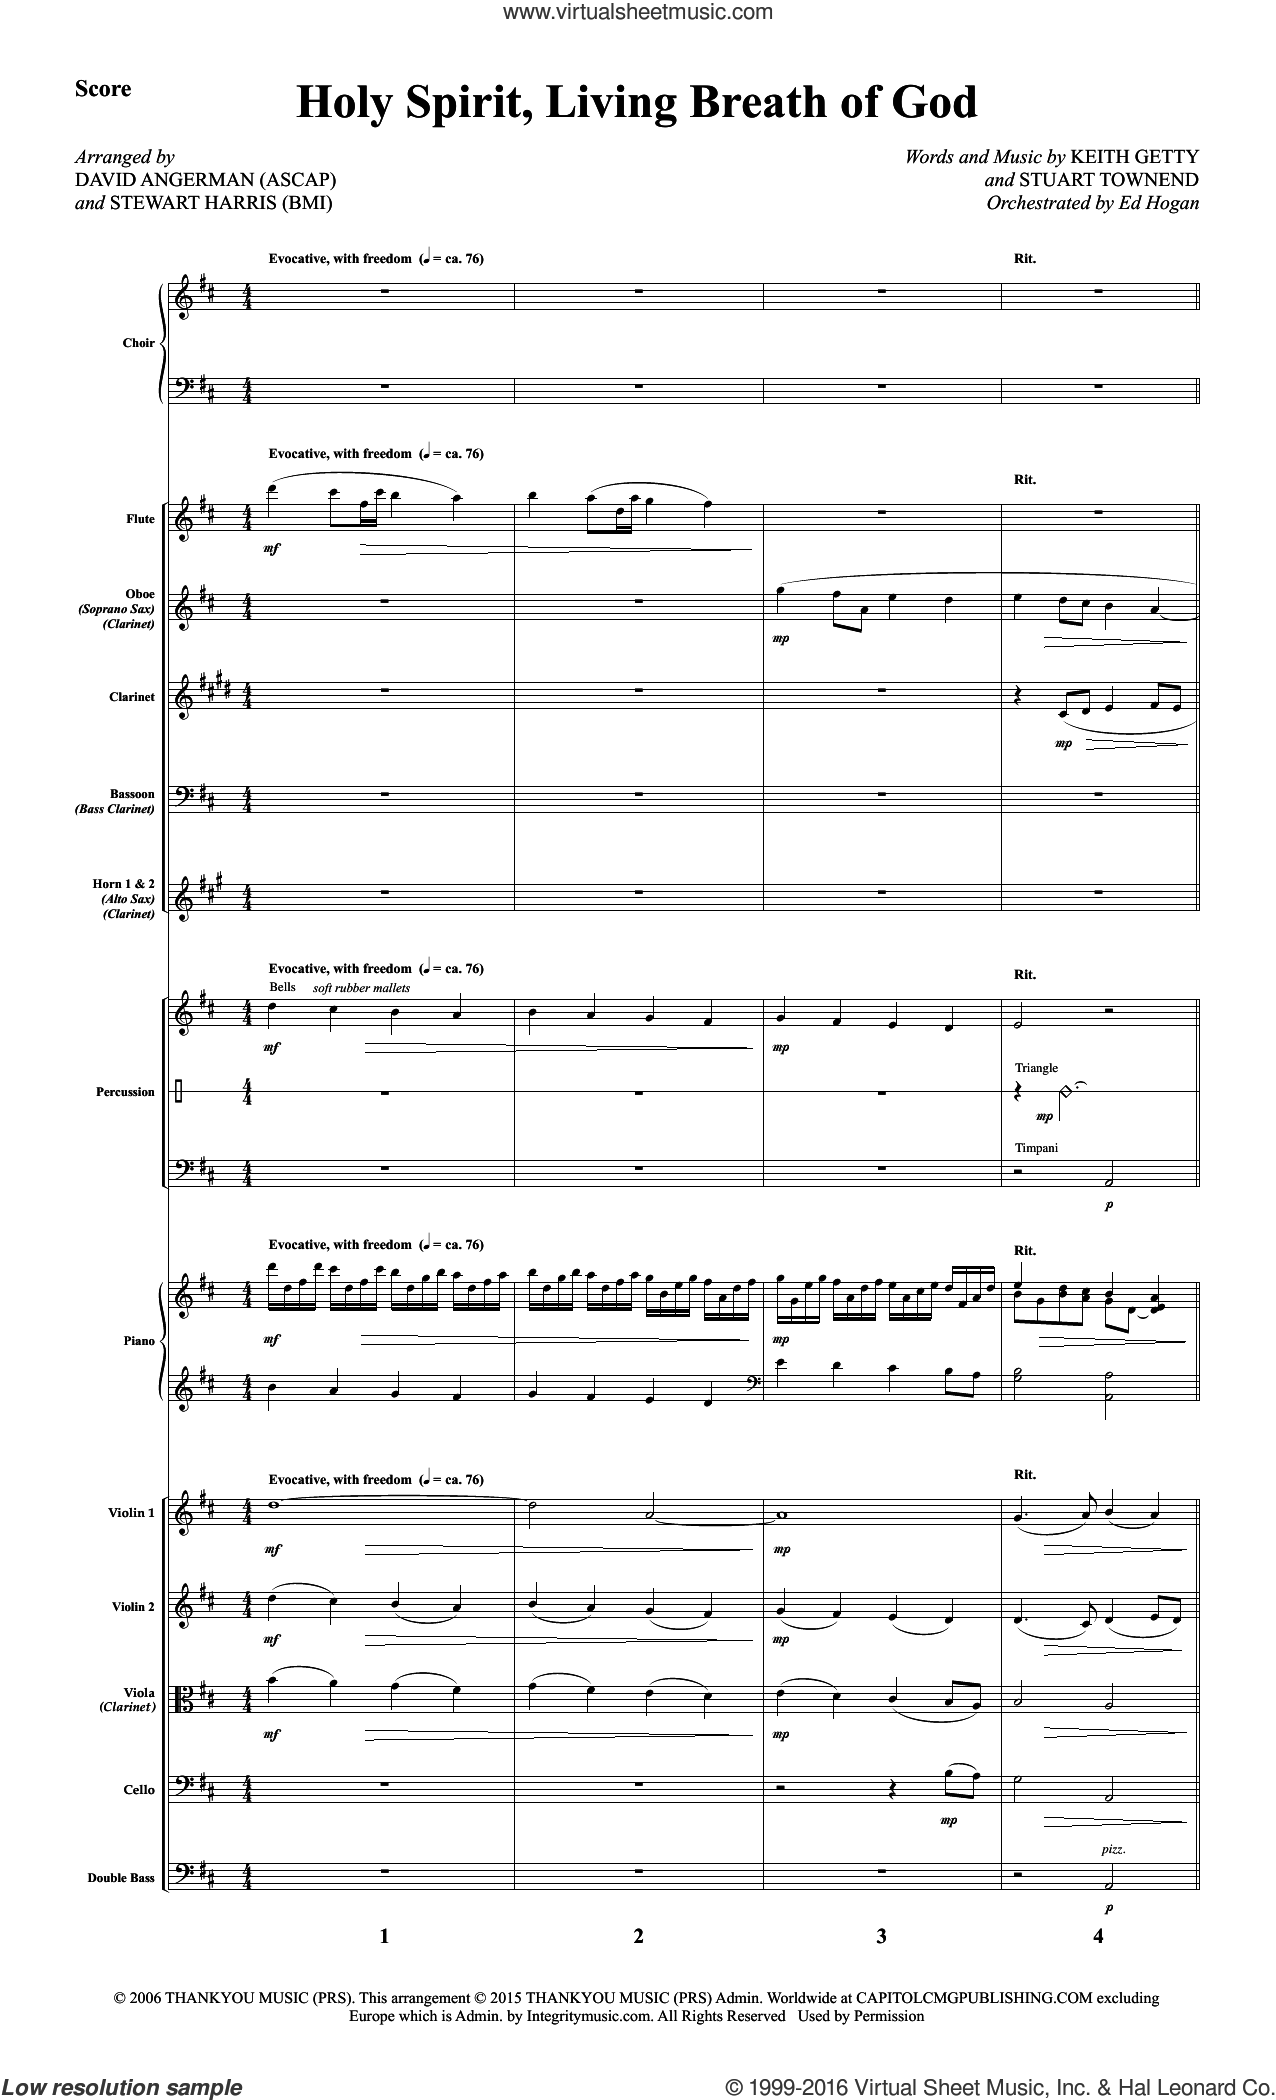 Holy Spirit, Living Breath of God (COMPLETE) sheet music for orchestra by Stuart Townend, David Angerman, Keith & Kristyn Getty, Stewart Harris and Keith Getty, intermediate orchestra. Score Image Preview.